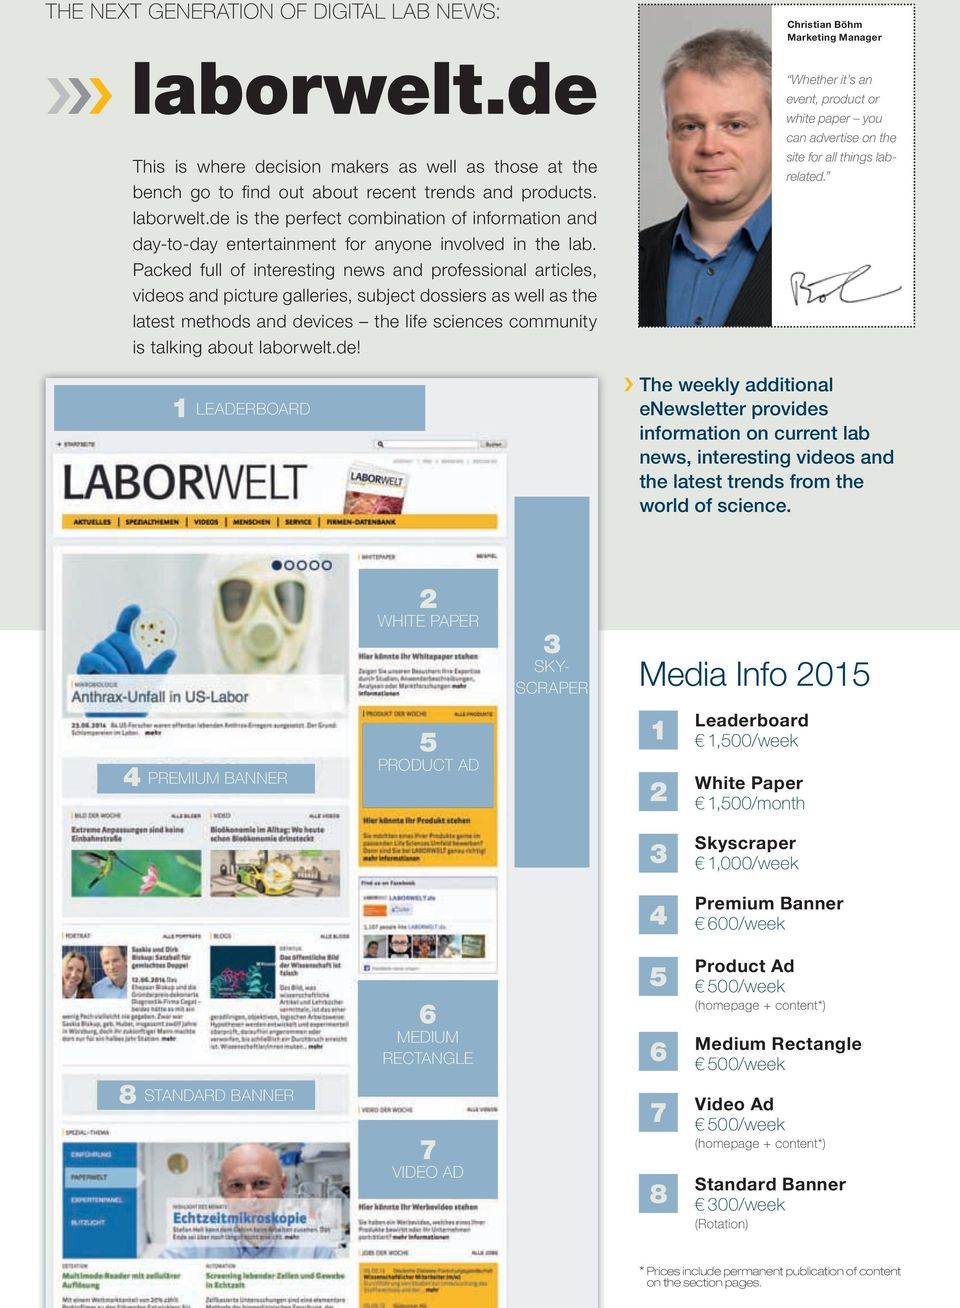 laborwelt.de! 1 LEADERBOARD Christian Böhm Marketing Manager Whether it s an event, product or white paper you can advertise on the site for all things labrelated.